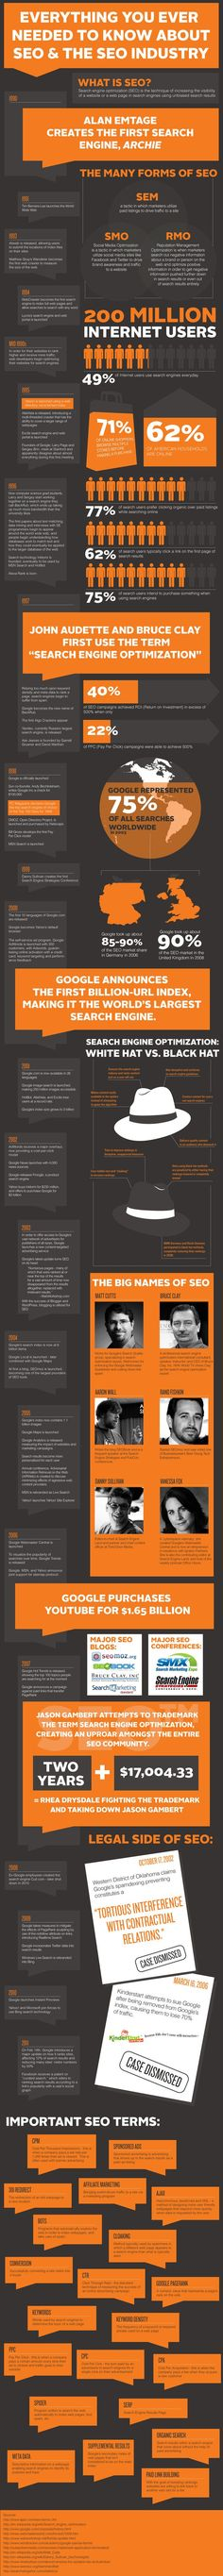 Learn Everything About Search Engine Optimization - #SEO #infographic